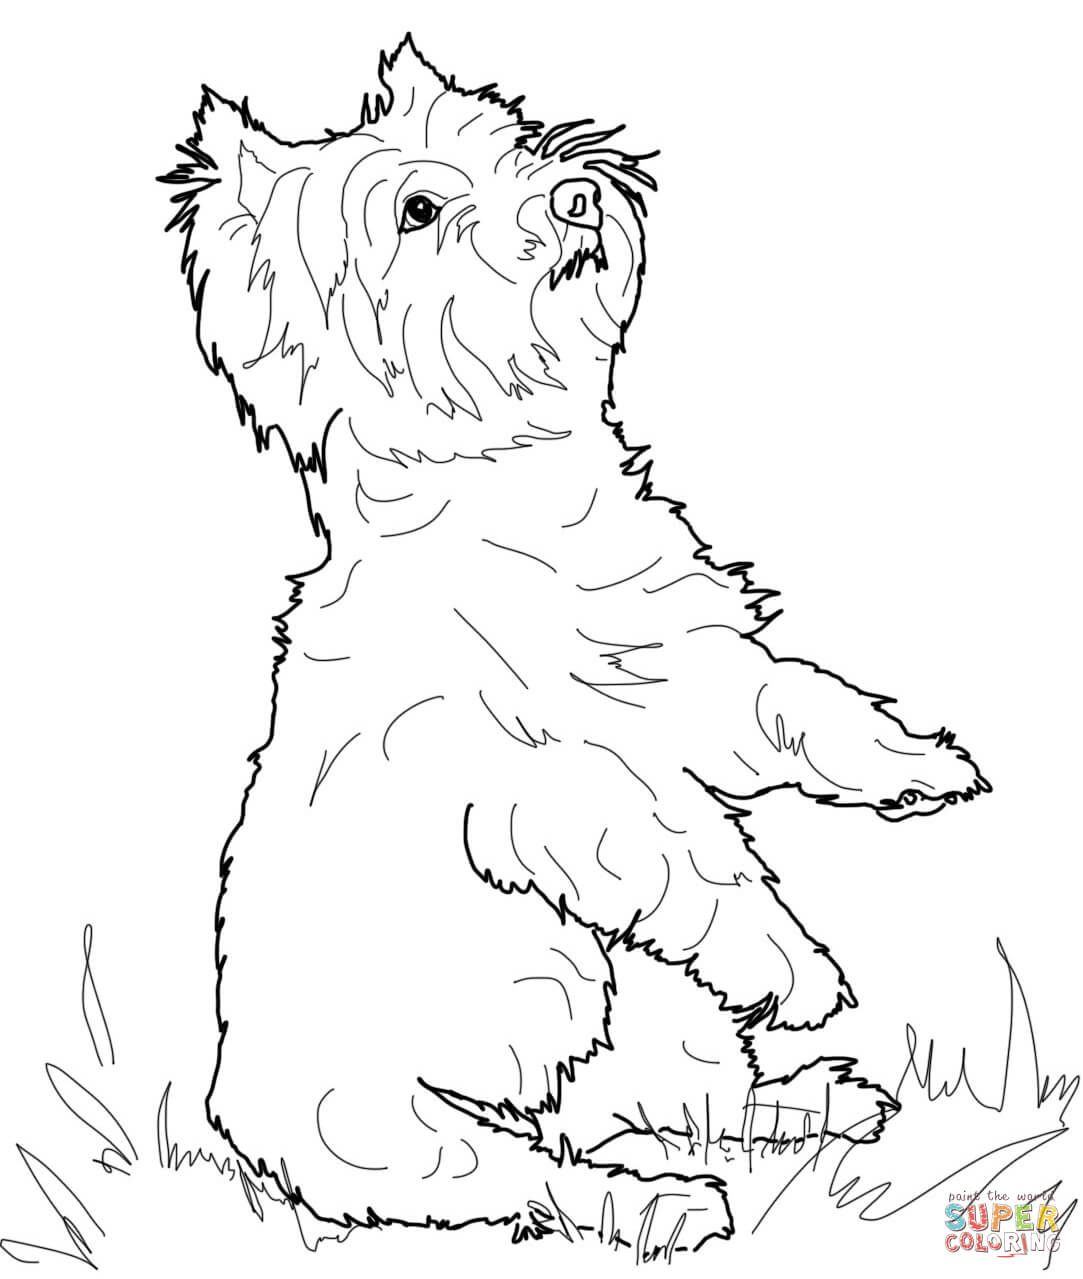 Yorkshire Terrier Or Yorkie Coloring Page Free Printable Coloring Pages Dog Coloring Book Dog Coloring Page Puppy Coloring Pages